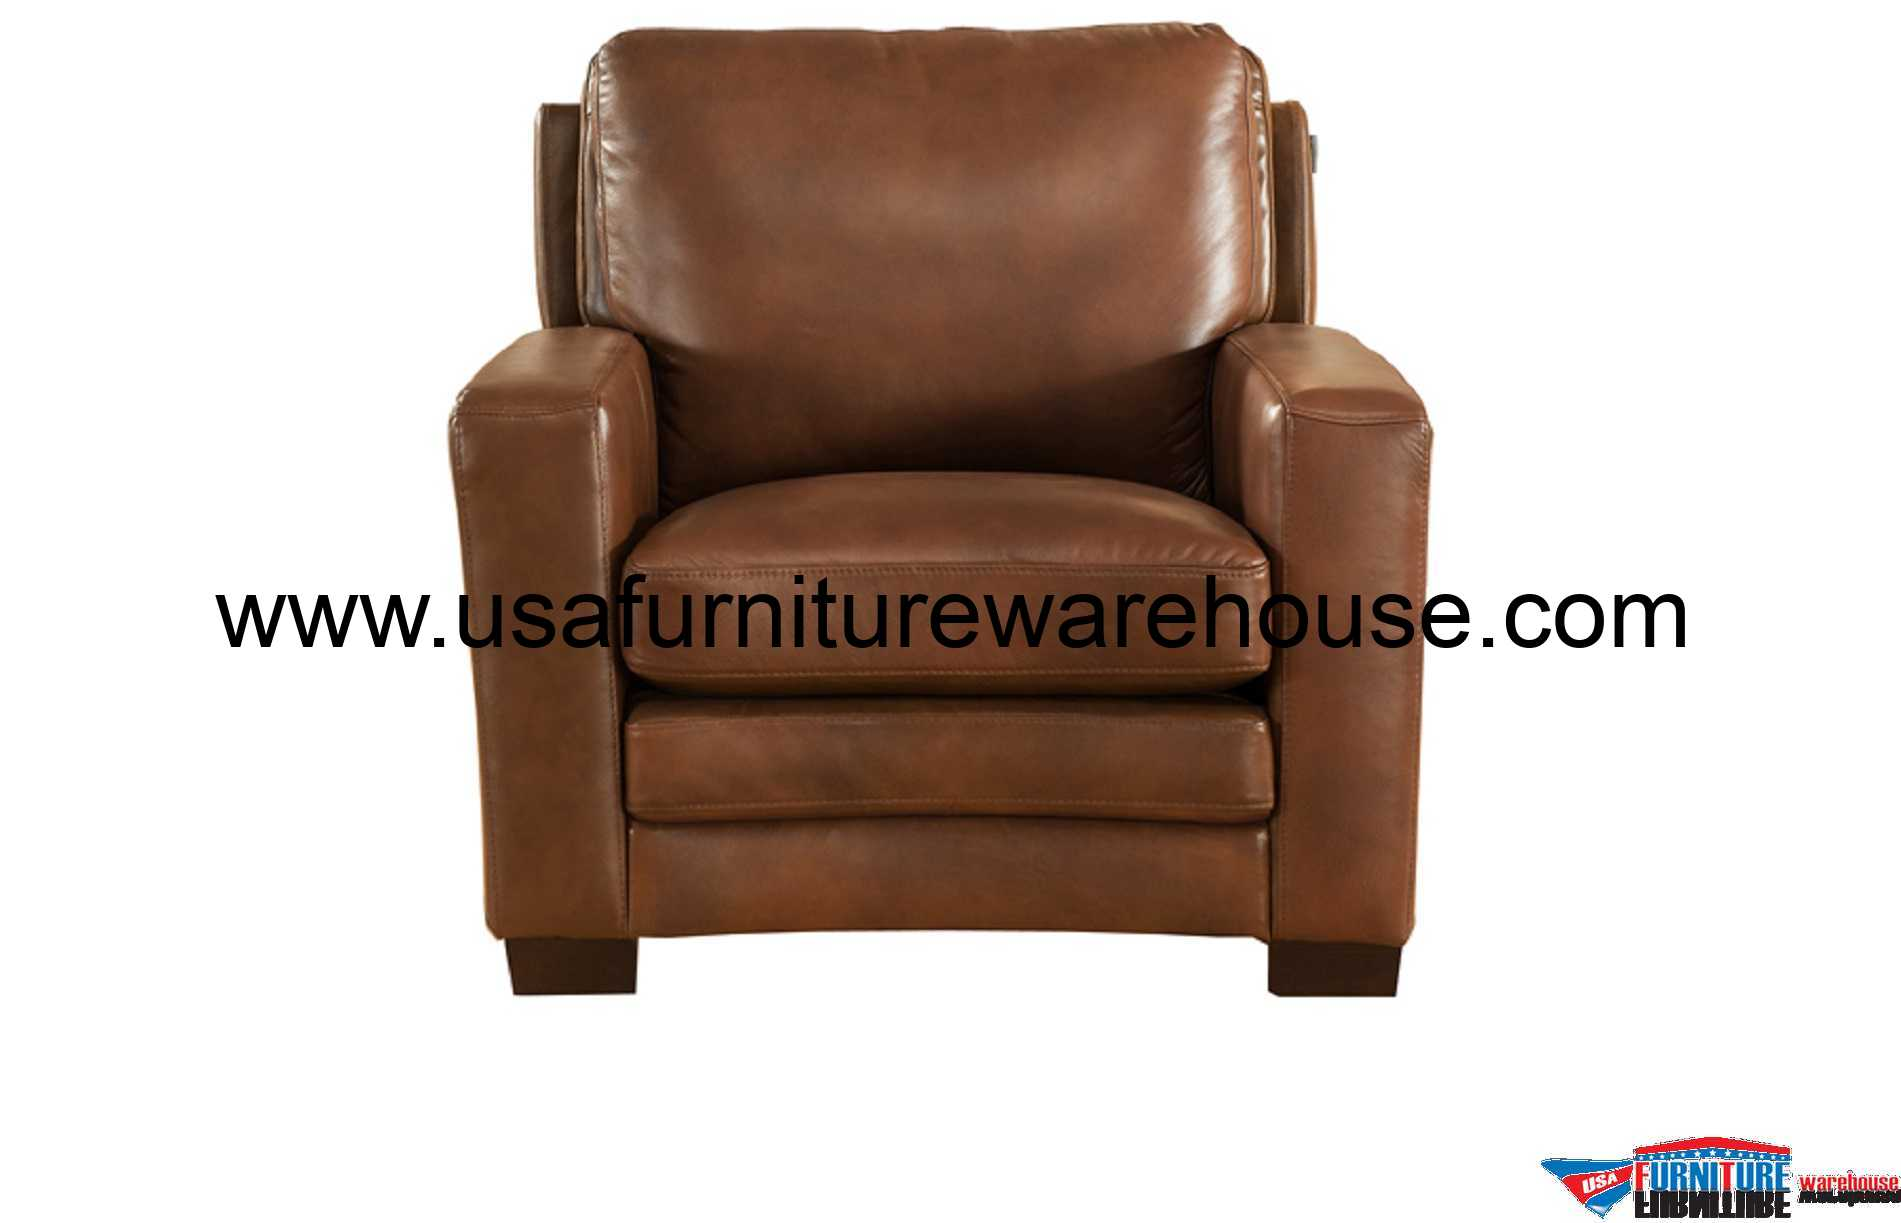 Best Leather Chairs Joanna Full Top Grain Brown Leather Chair Usa Furniture